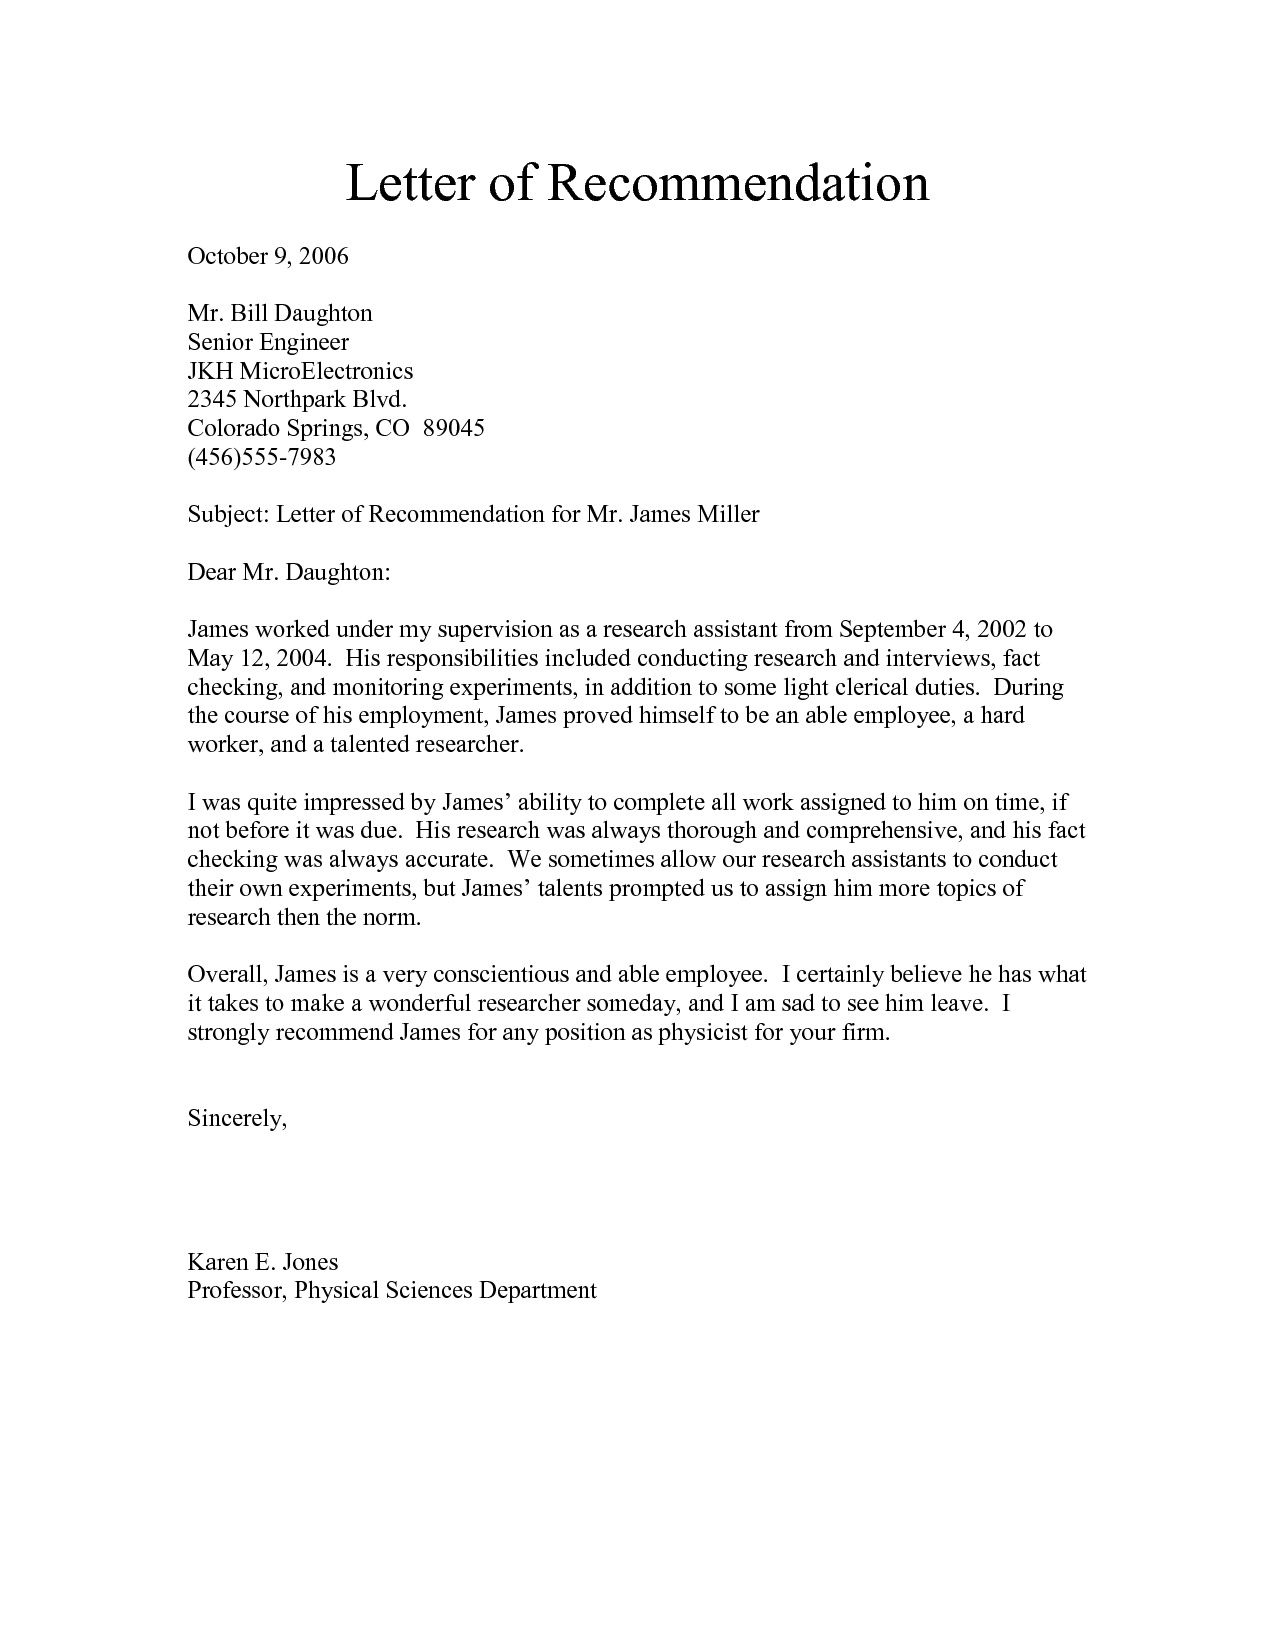 Template For Letter Of Recommendation from www.addictionary.org